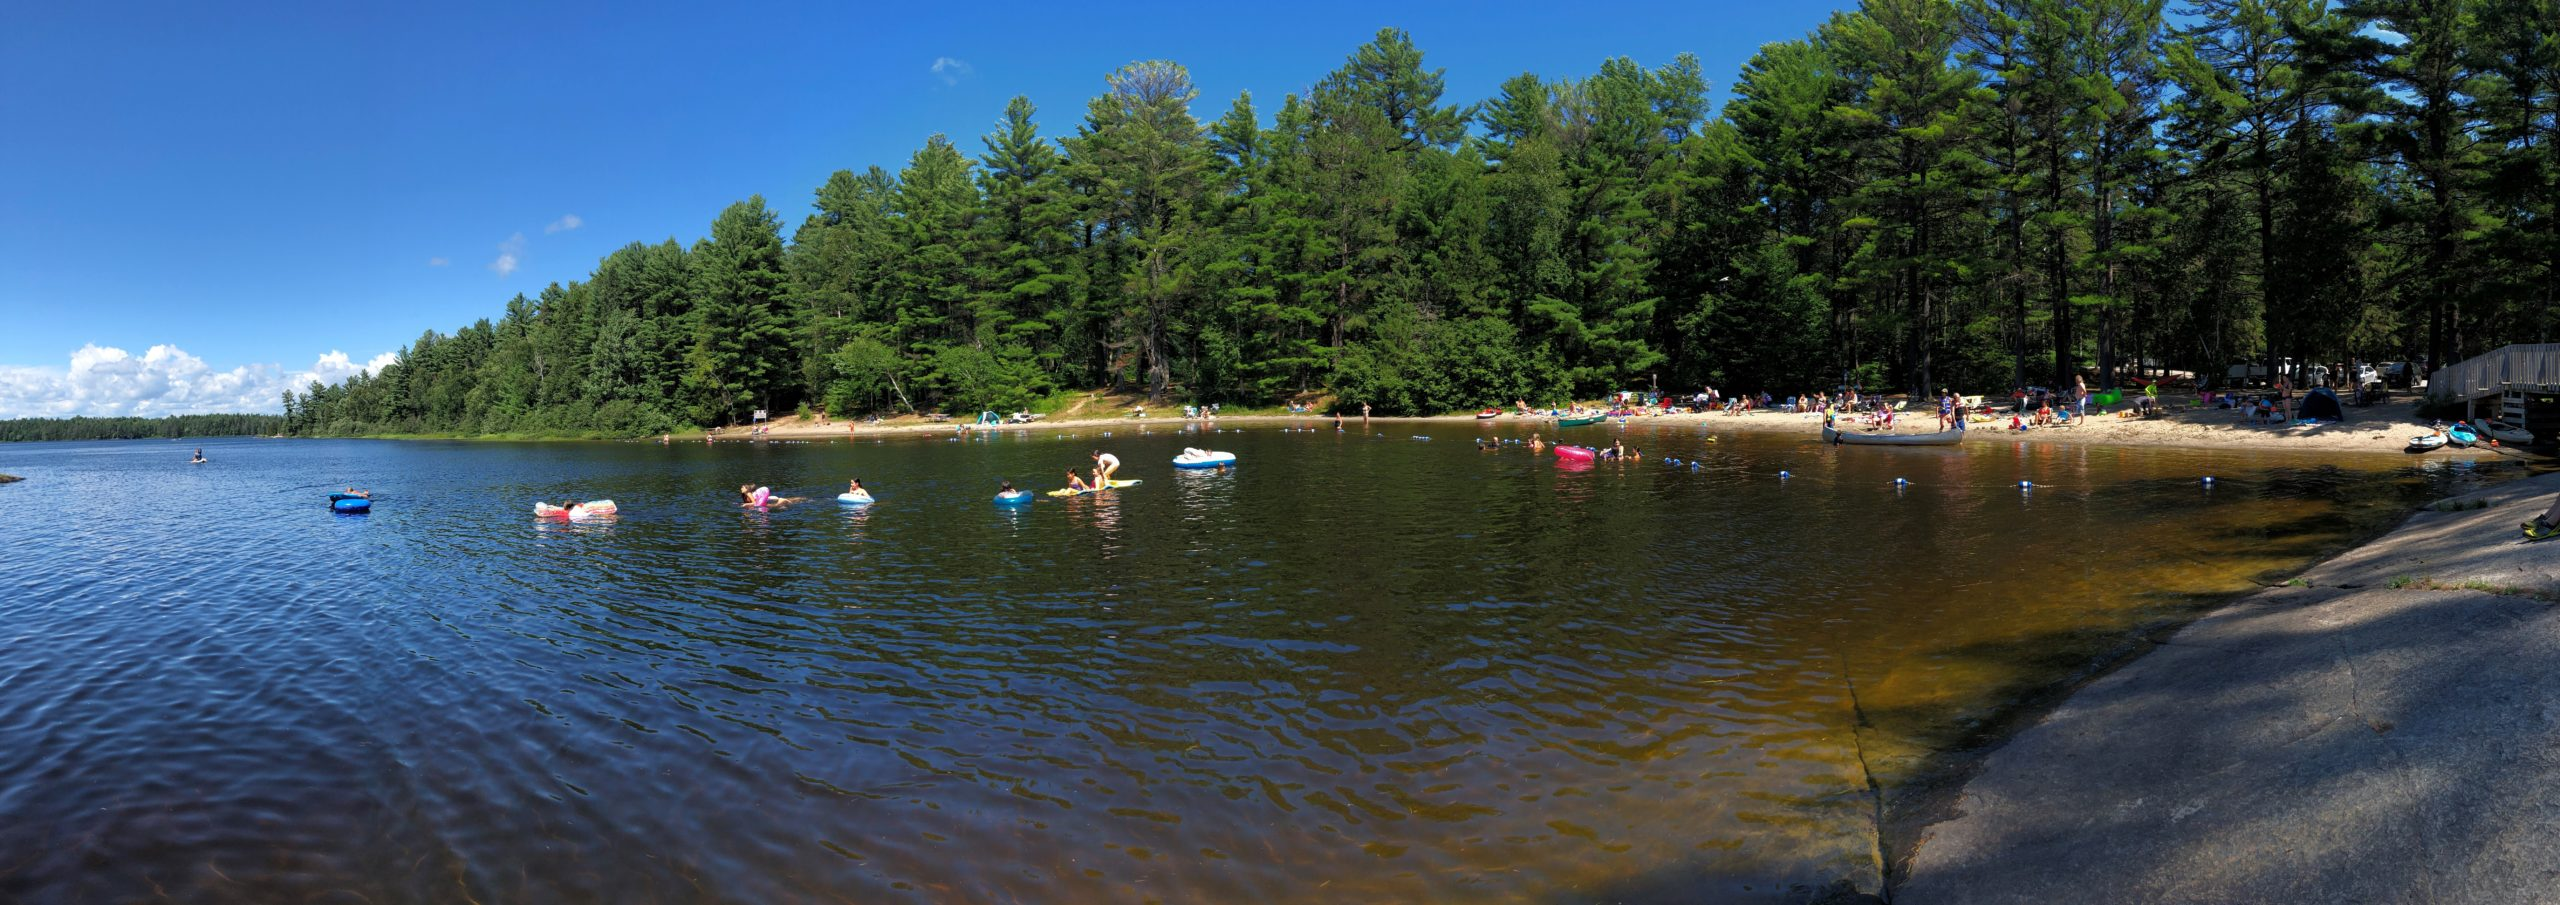 Panorma photo of the main beach at Grundy Lake Provincial Park